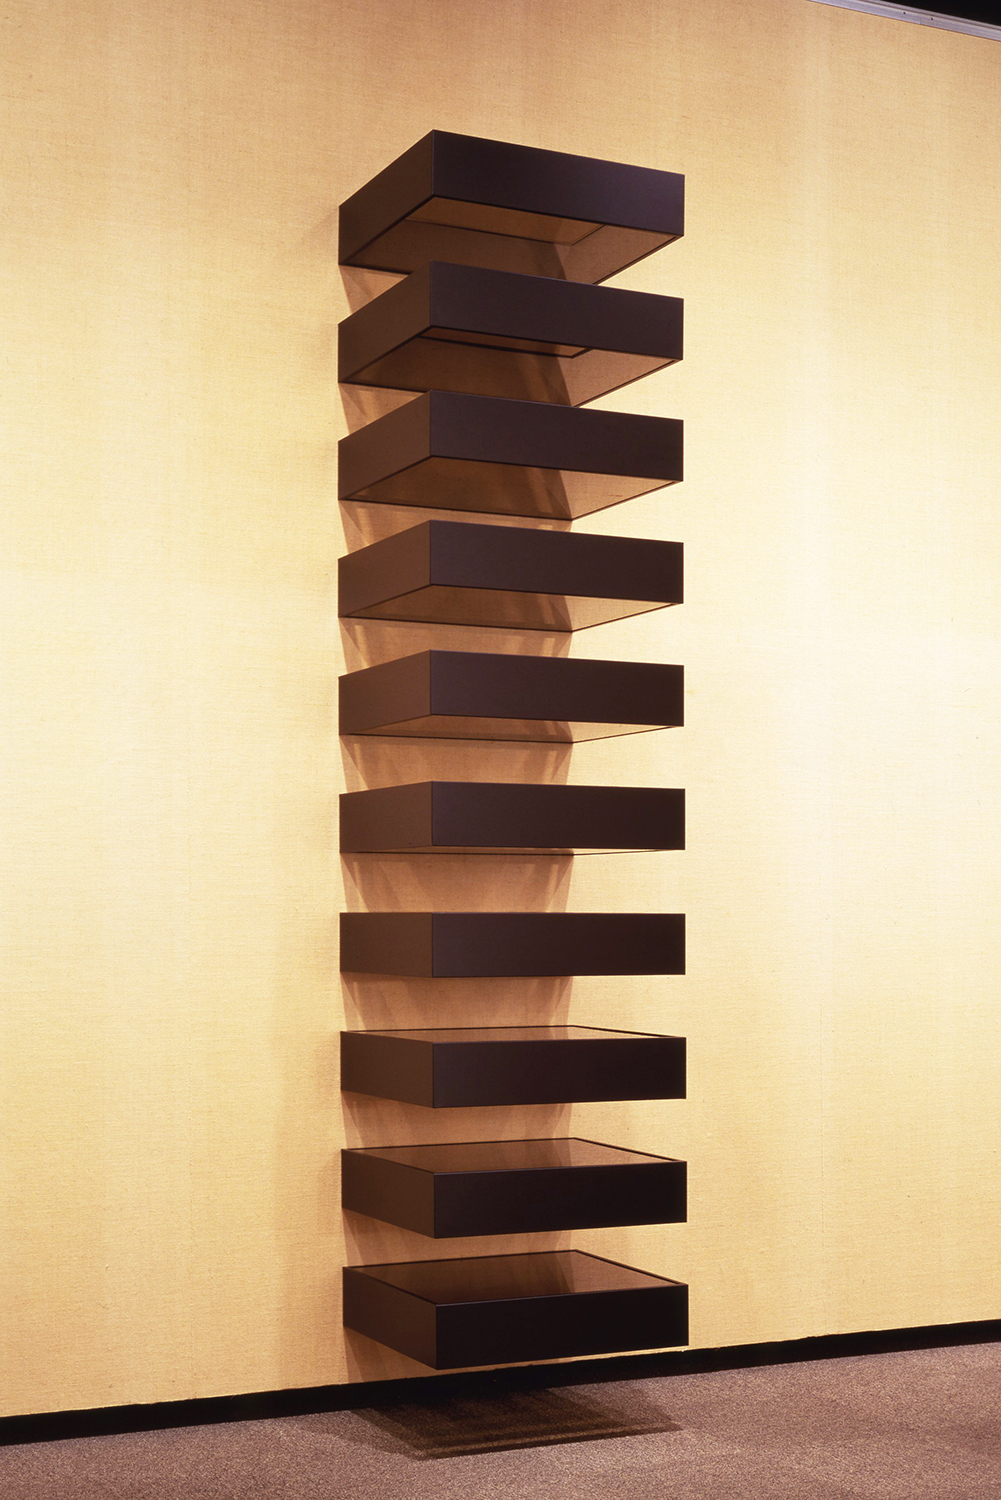 Untitled 1990|blacked anodized aluminum with bronze plexiglass top and bottom (10 units) |15 x 68 x 61 cm each<br>Collection: Shizuoka Prefectural Museum of Art